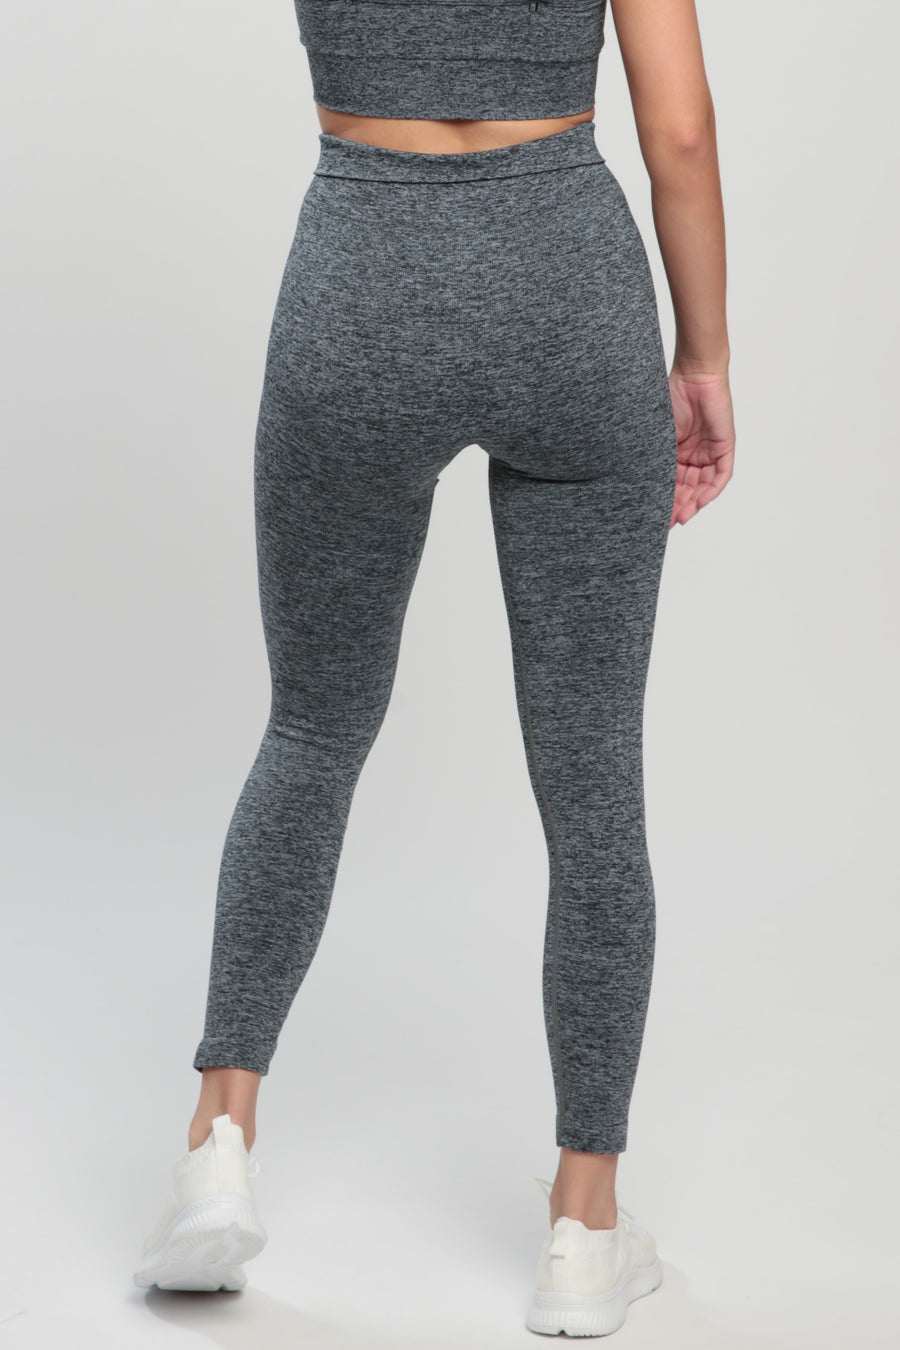 Gray Blessed High Waisted Leggings